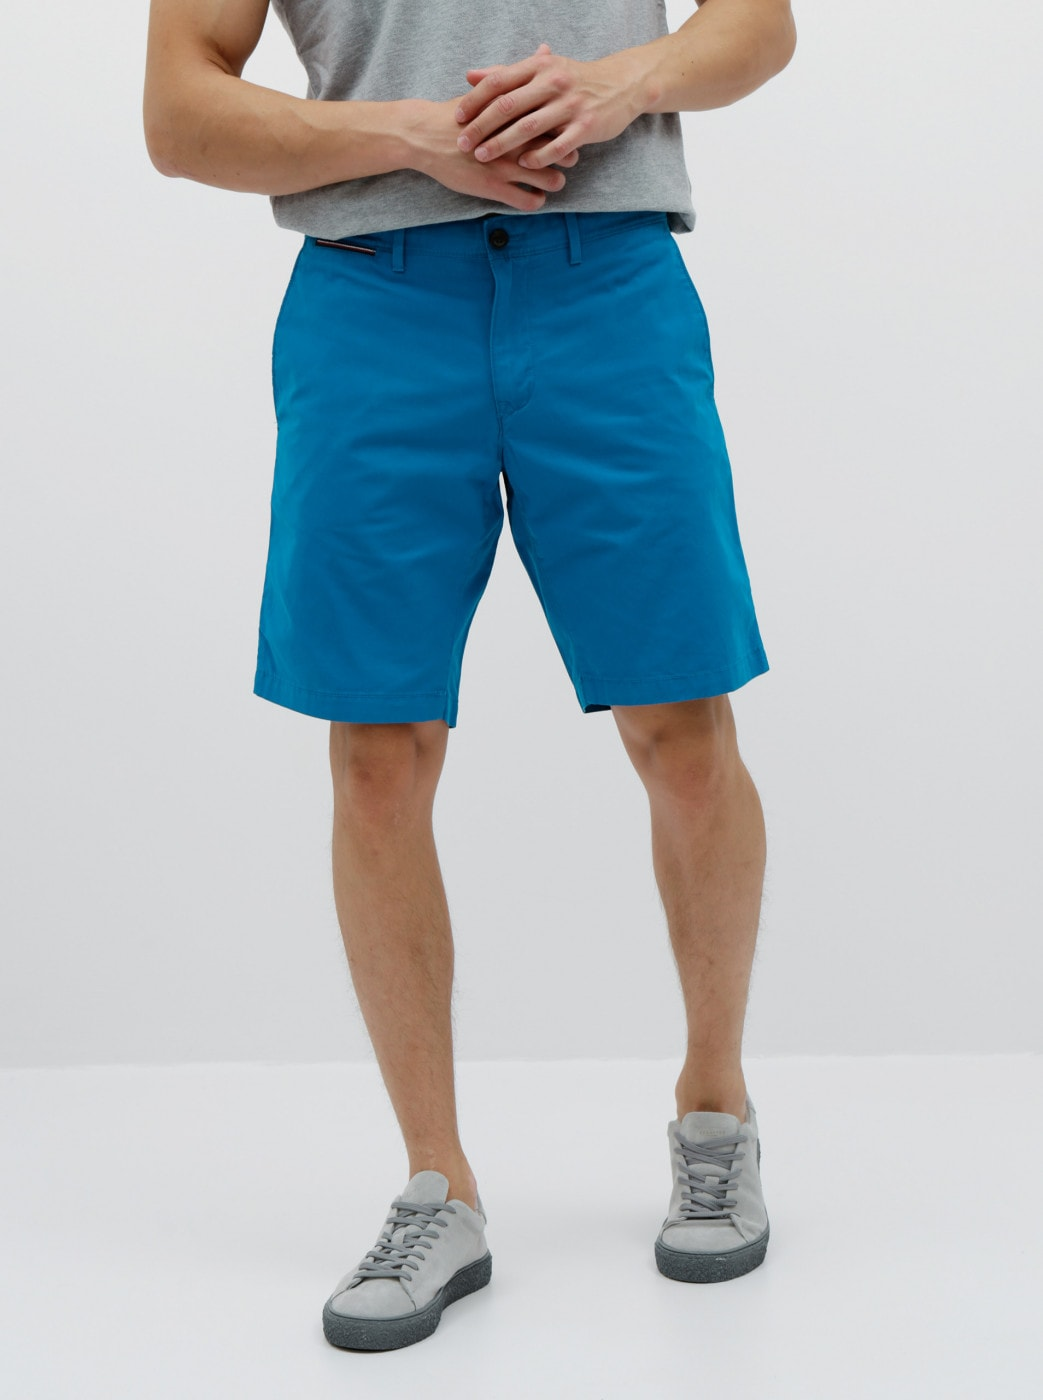 Blue Men's Chino Shorts By Tommy Hilfiger